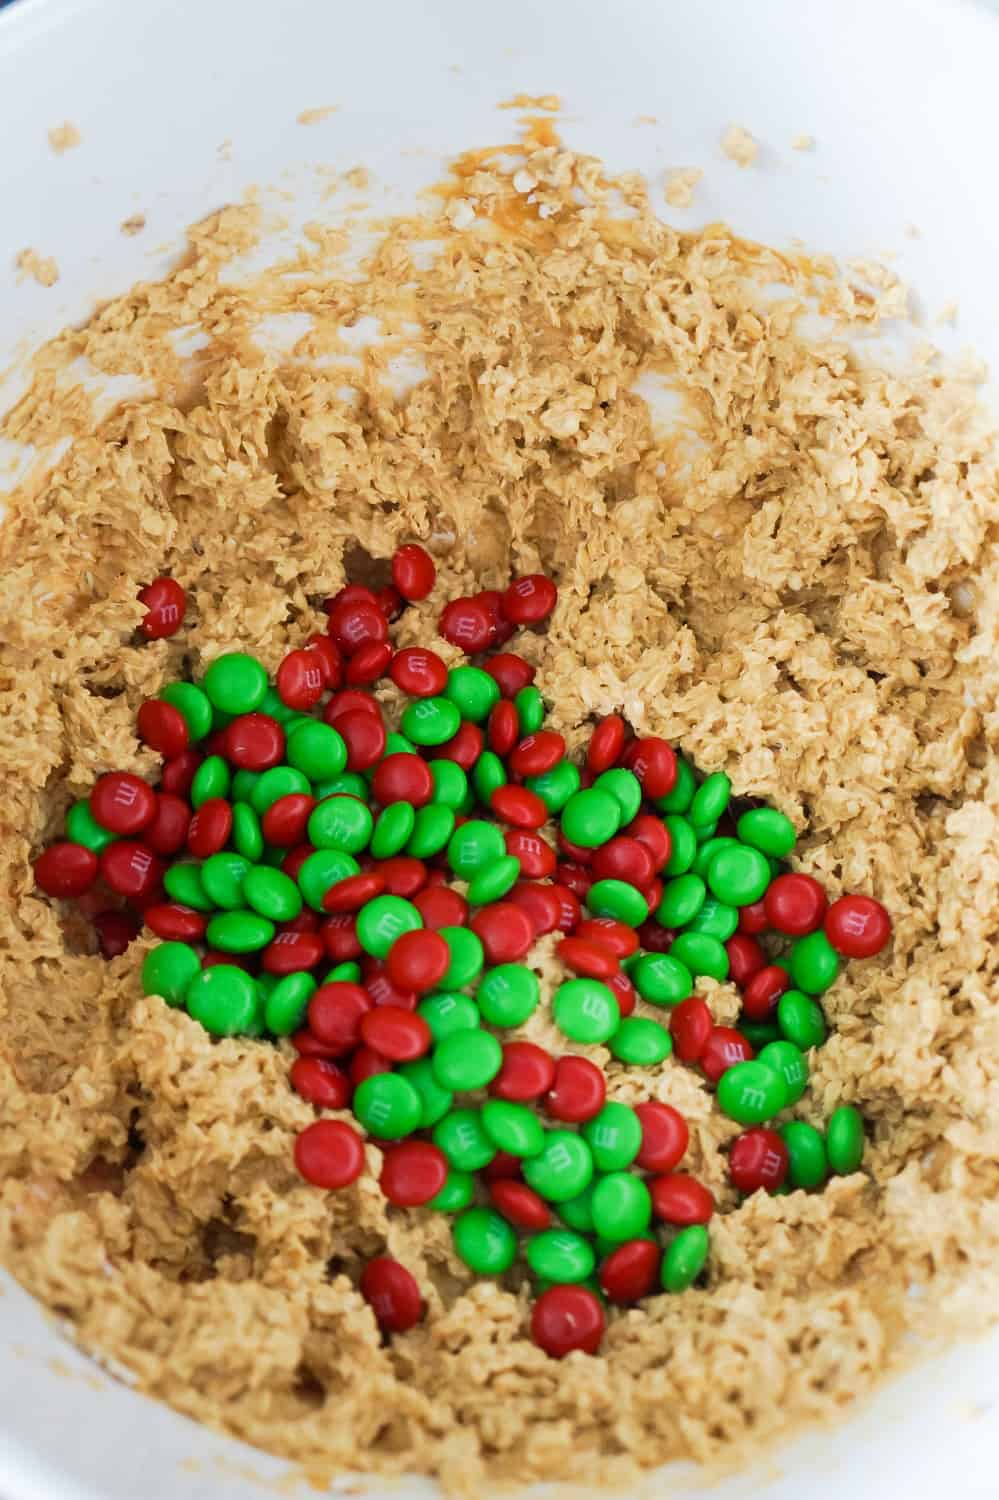 red and green M&Ms on top of peanut butter oatmeal cookie dough in a mixing bowl